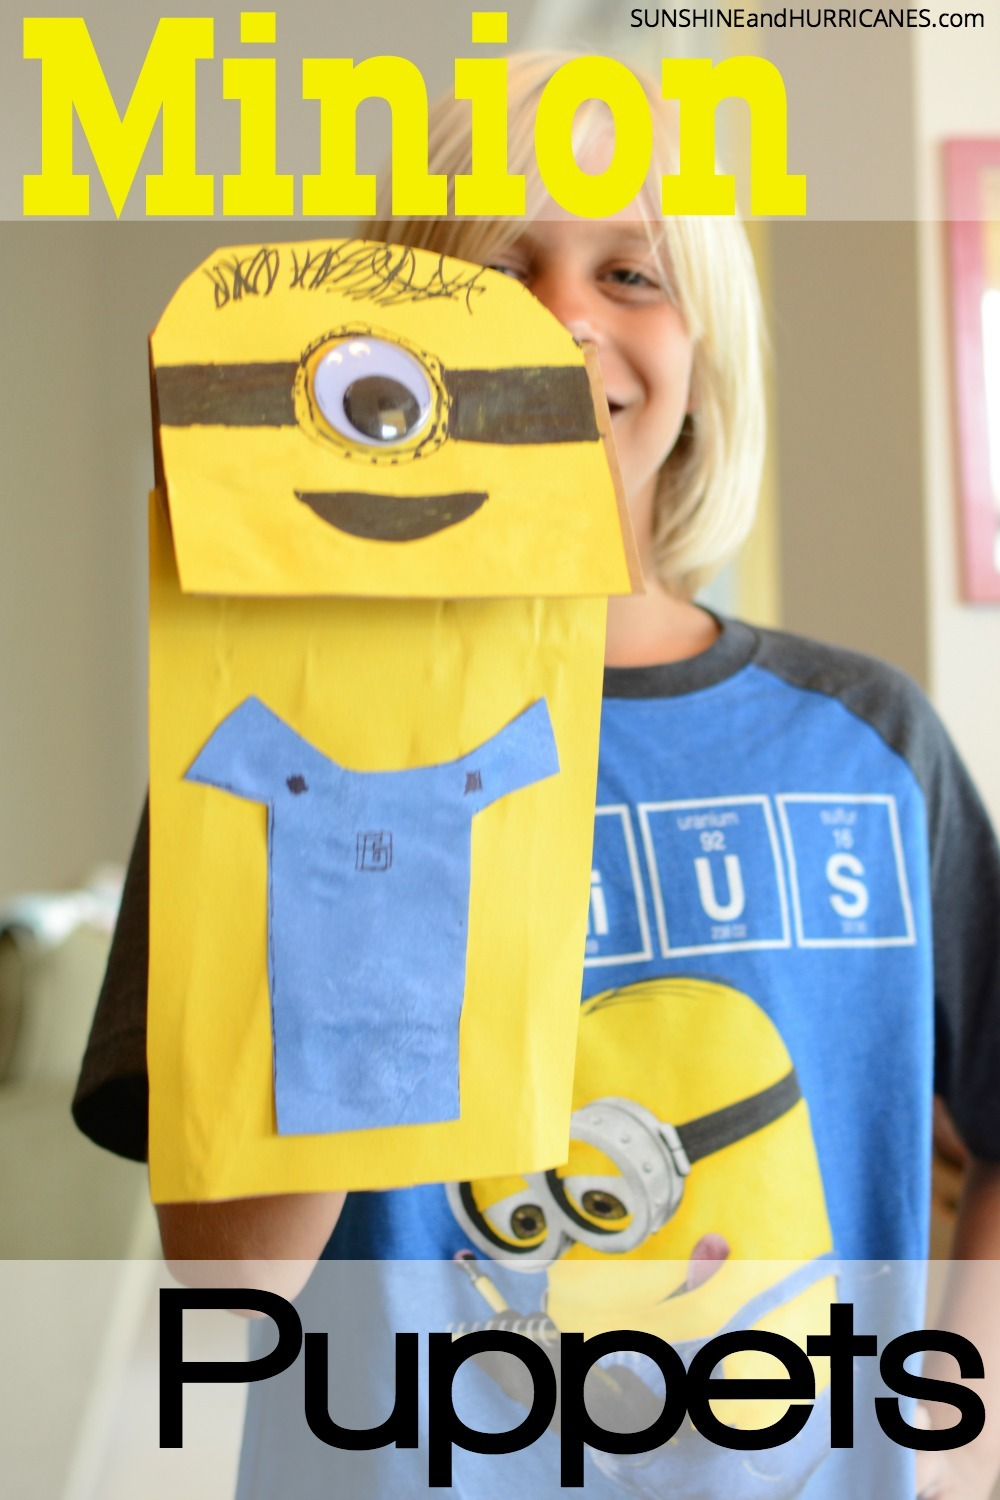 Do you have some little minion lovers in your household? Here is a super easy paper bag puppet craft for kids that will provide tons of minion fun!  Minion Puppets. SunshineandHurricanes.com